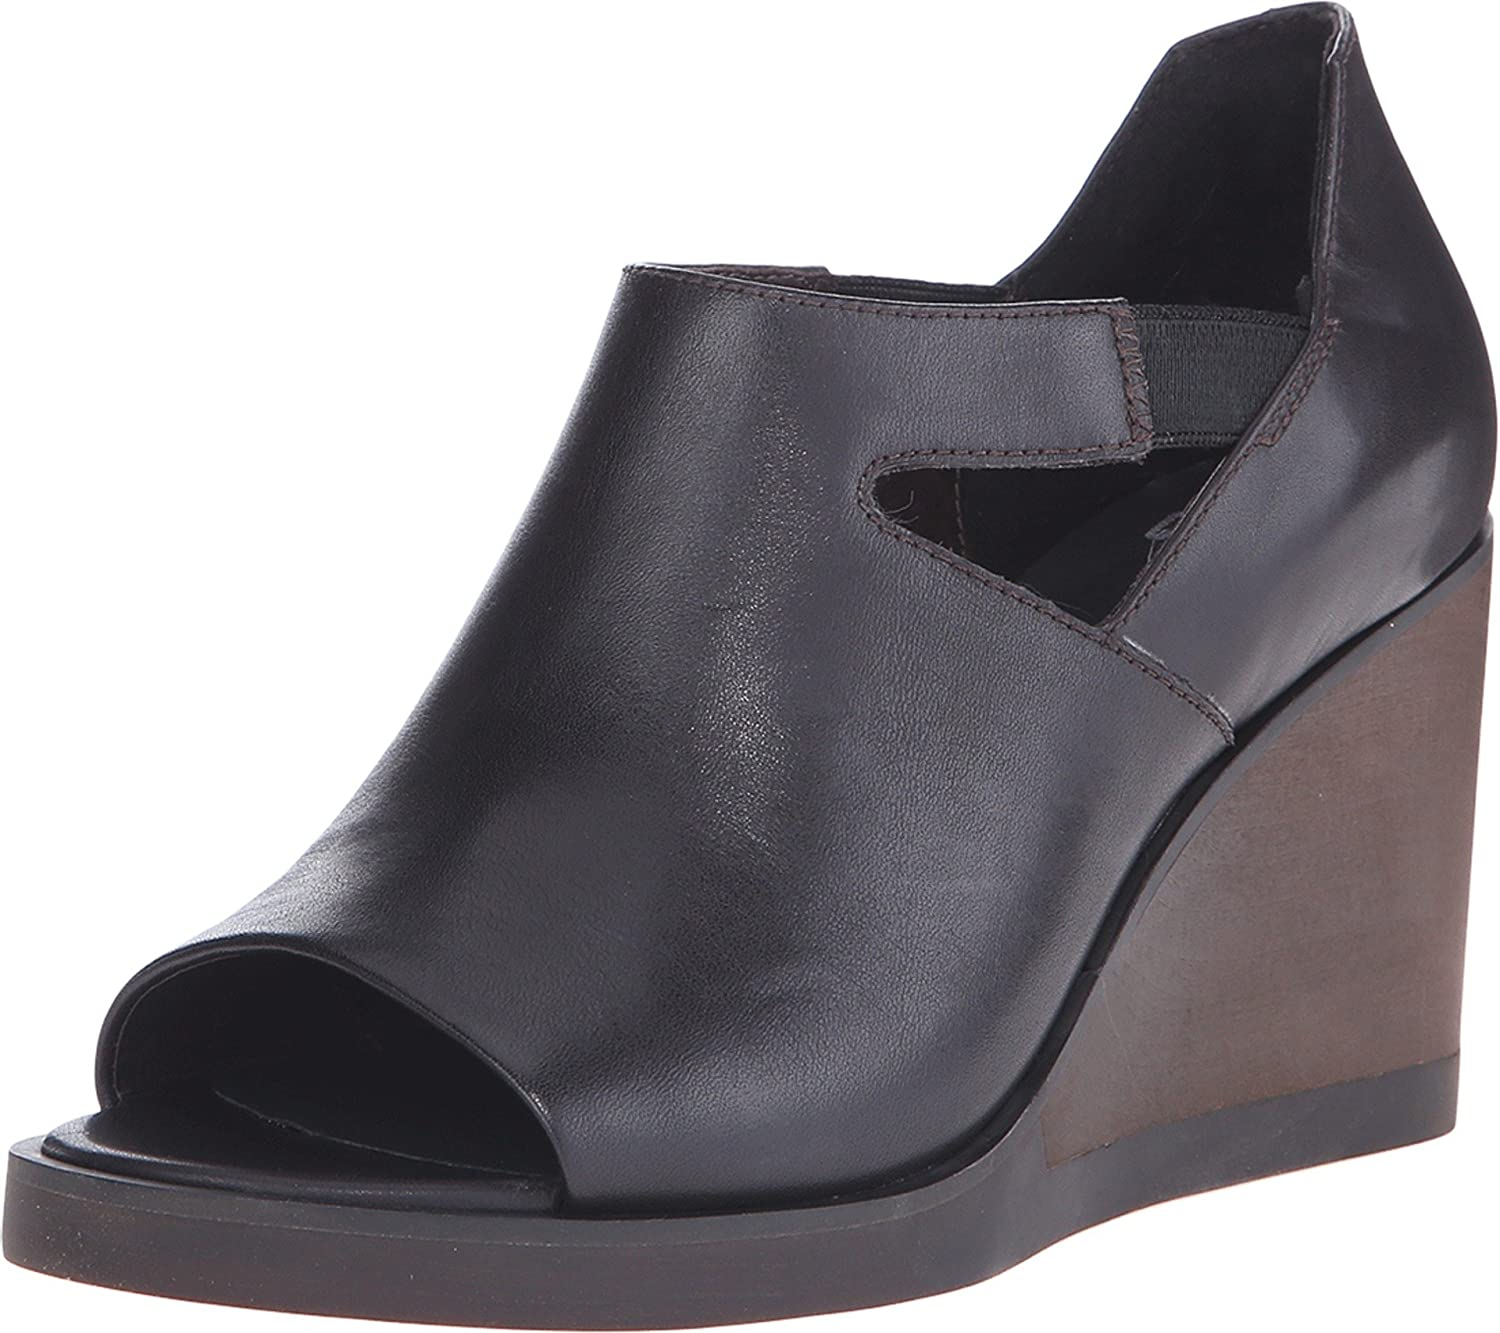 Camper Women's Limi Wedge Sandals B011BCW0AS 10 B(M) US|Dark Brown